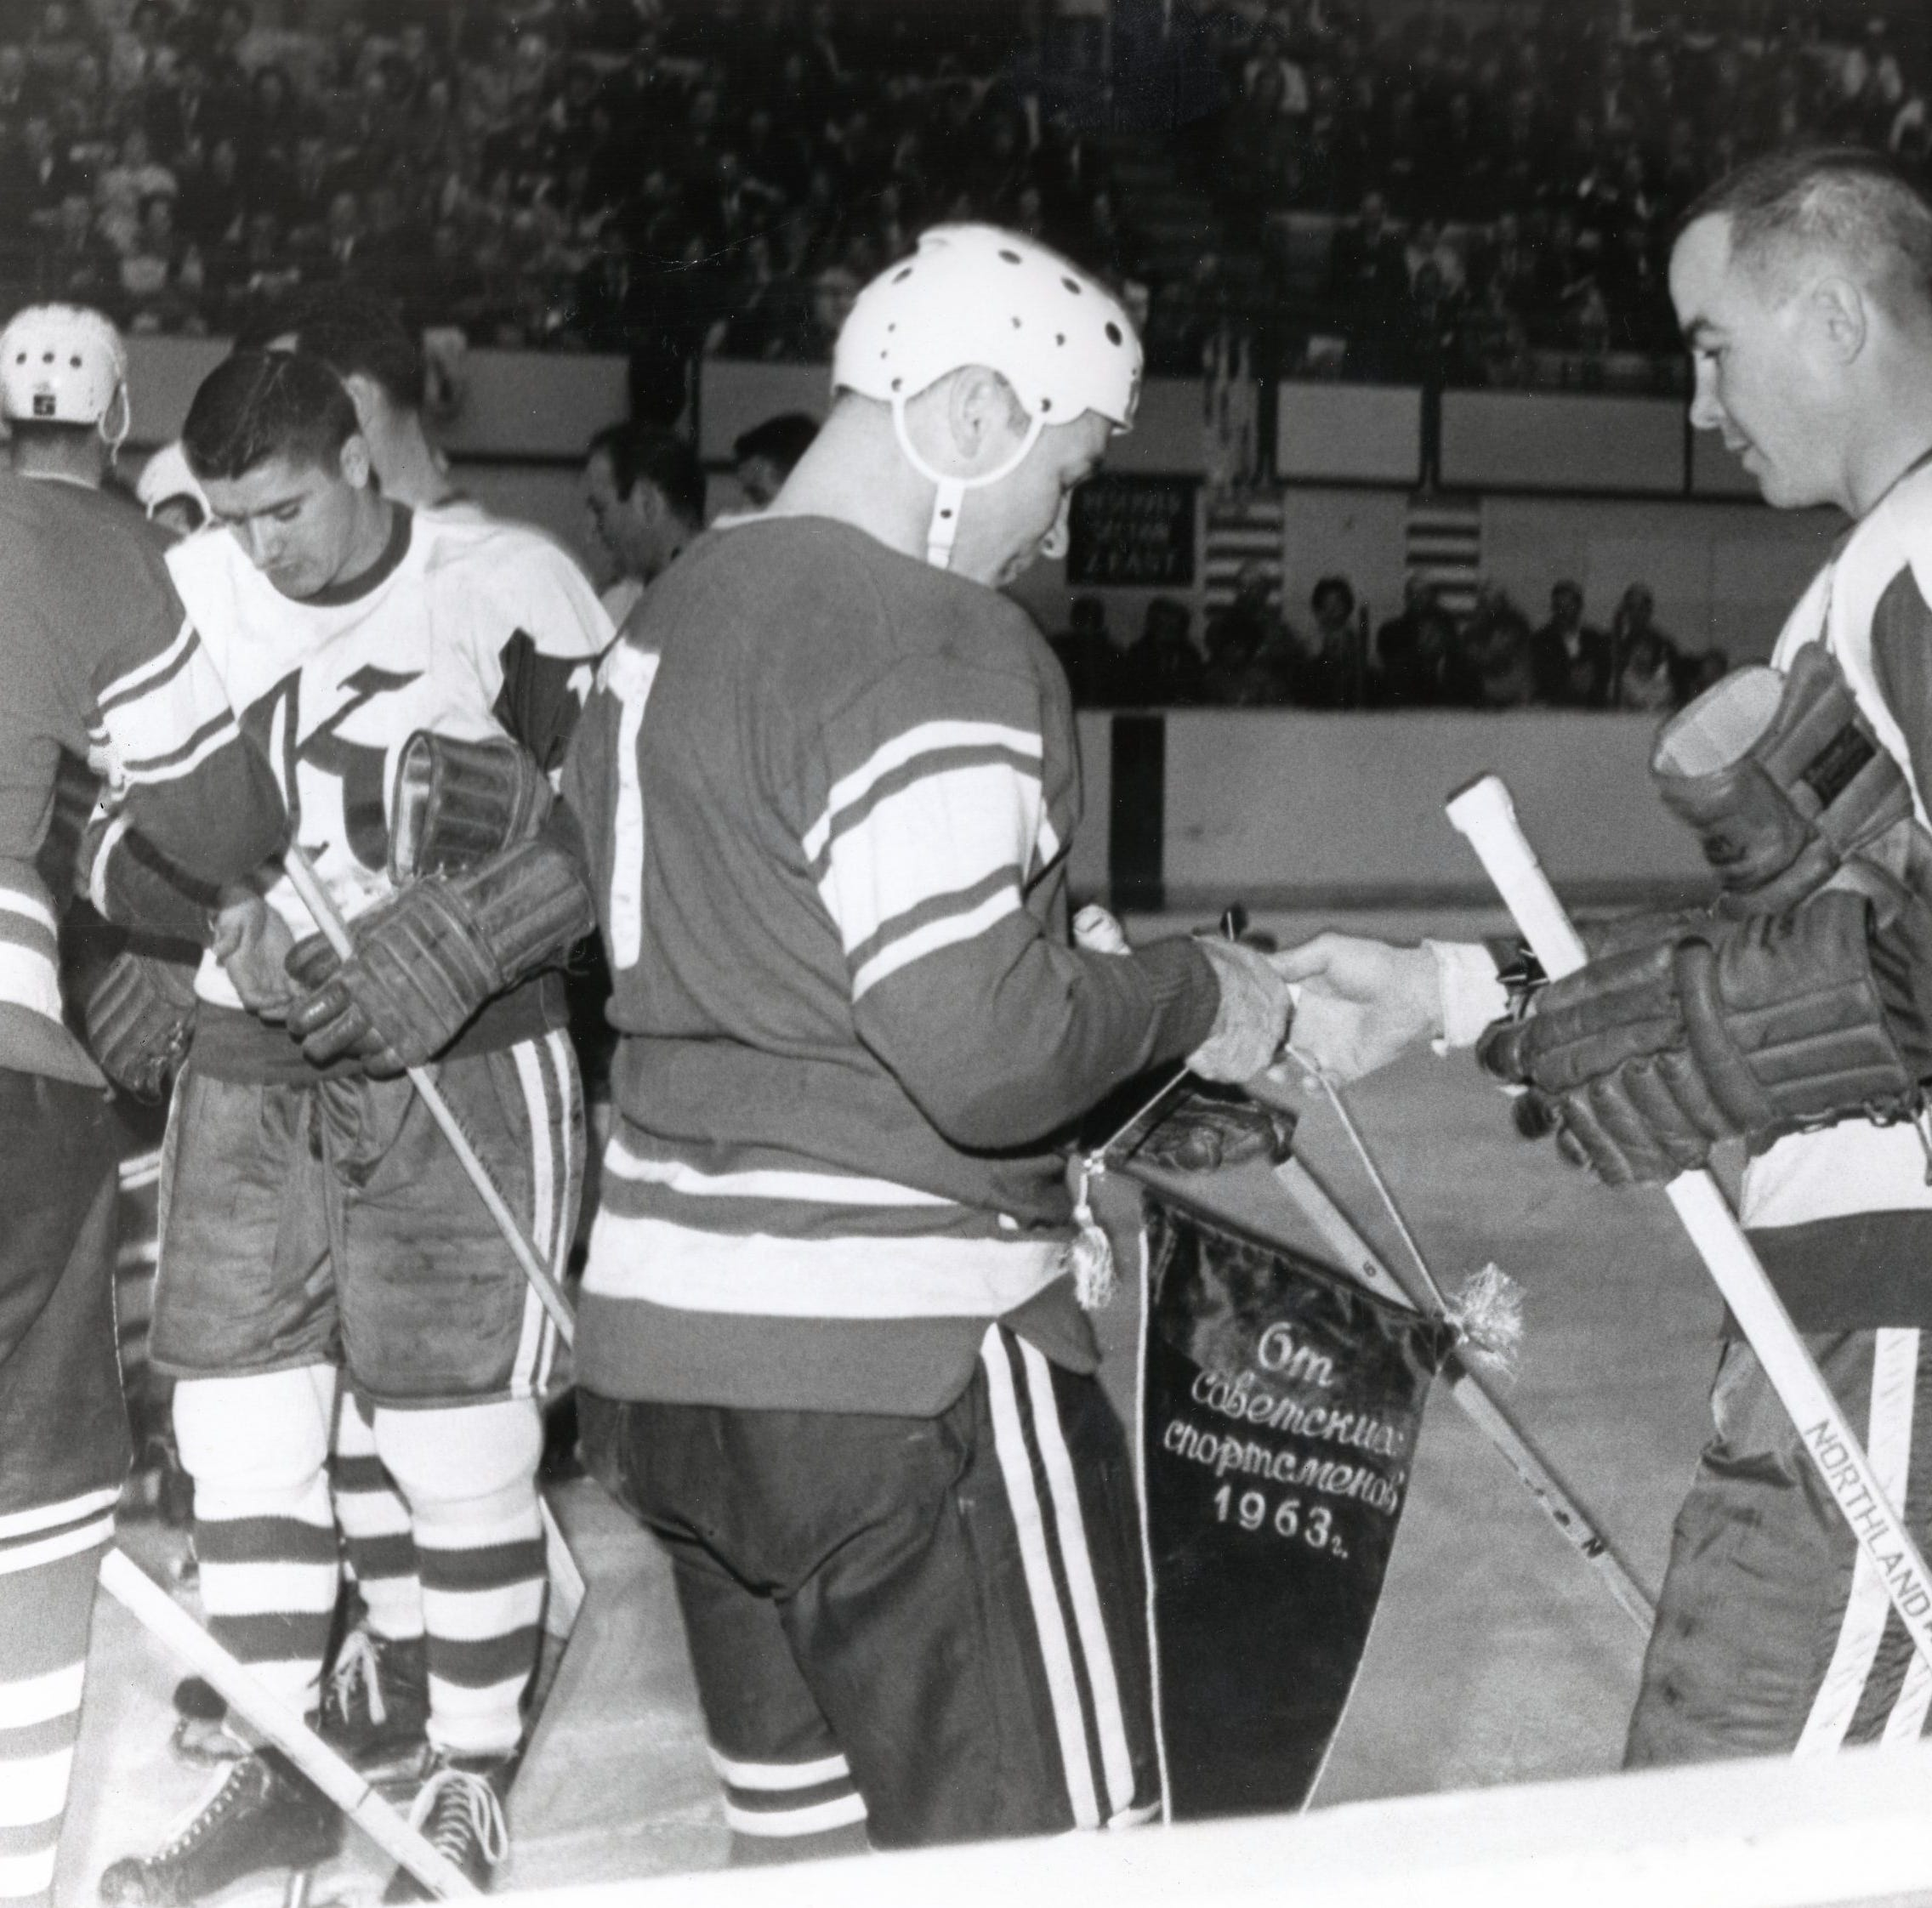 When the Knoxville Knights played the Soviets in 1963 hockey game